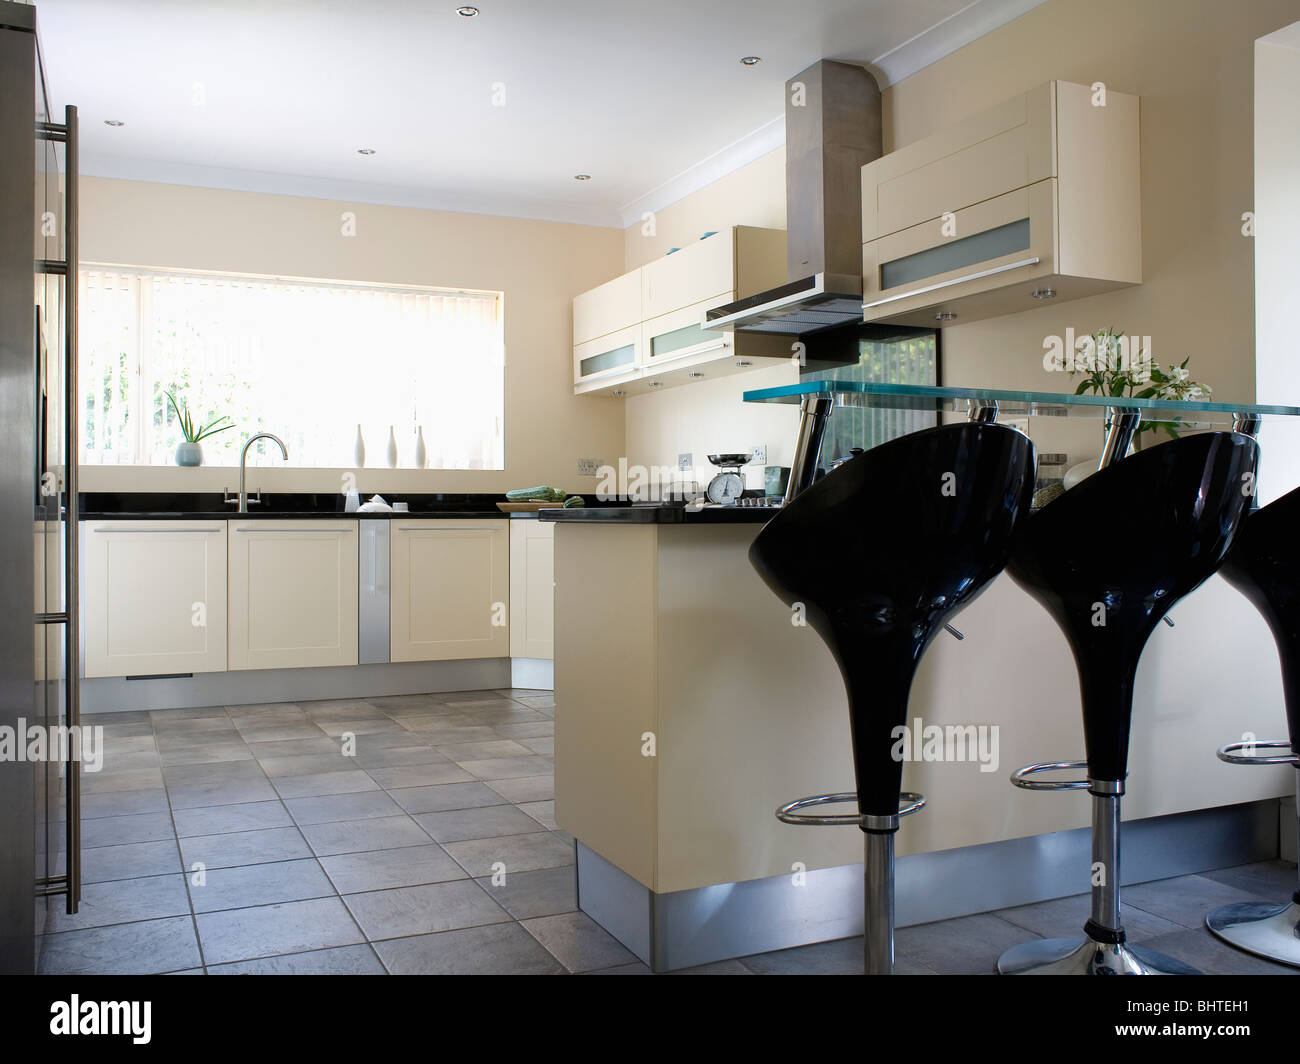 Black Bombo Stools At Breakfast Bar In Modern Kitchen With